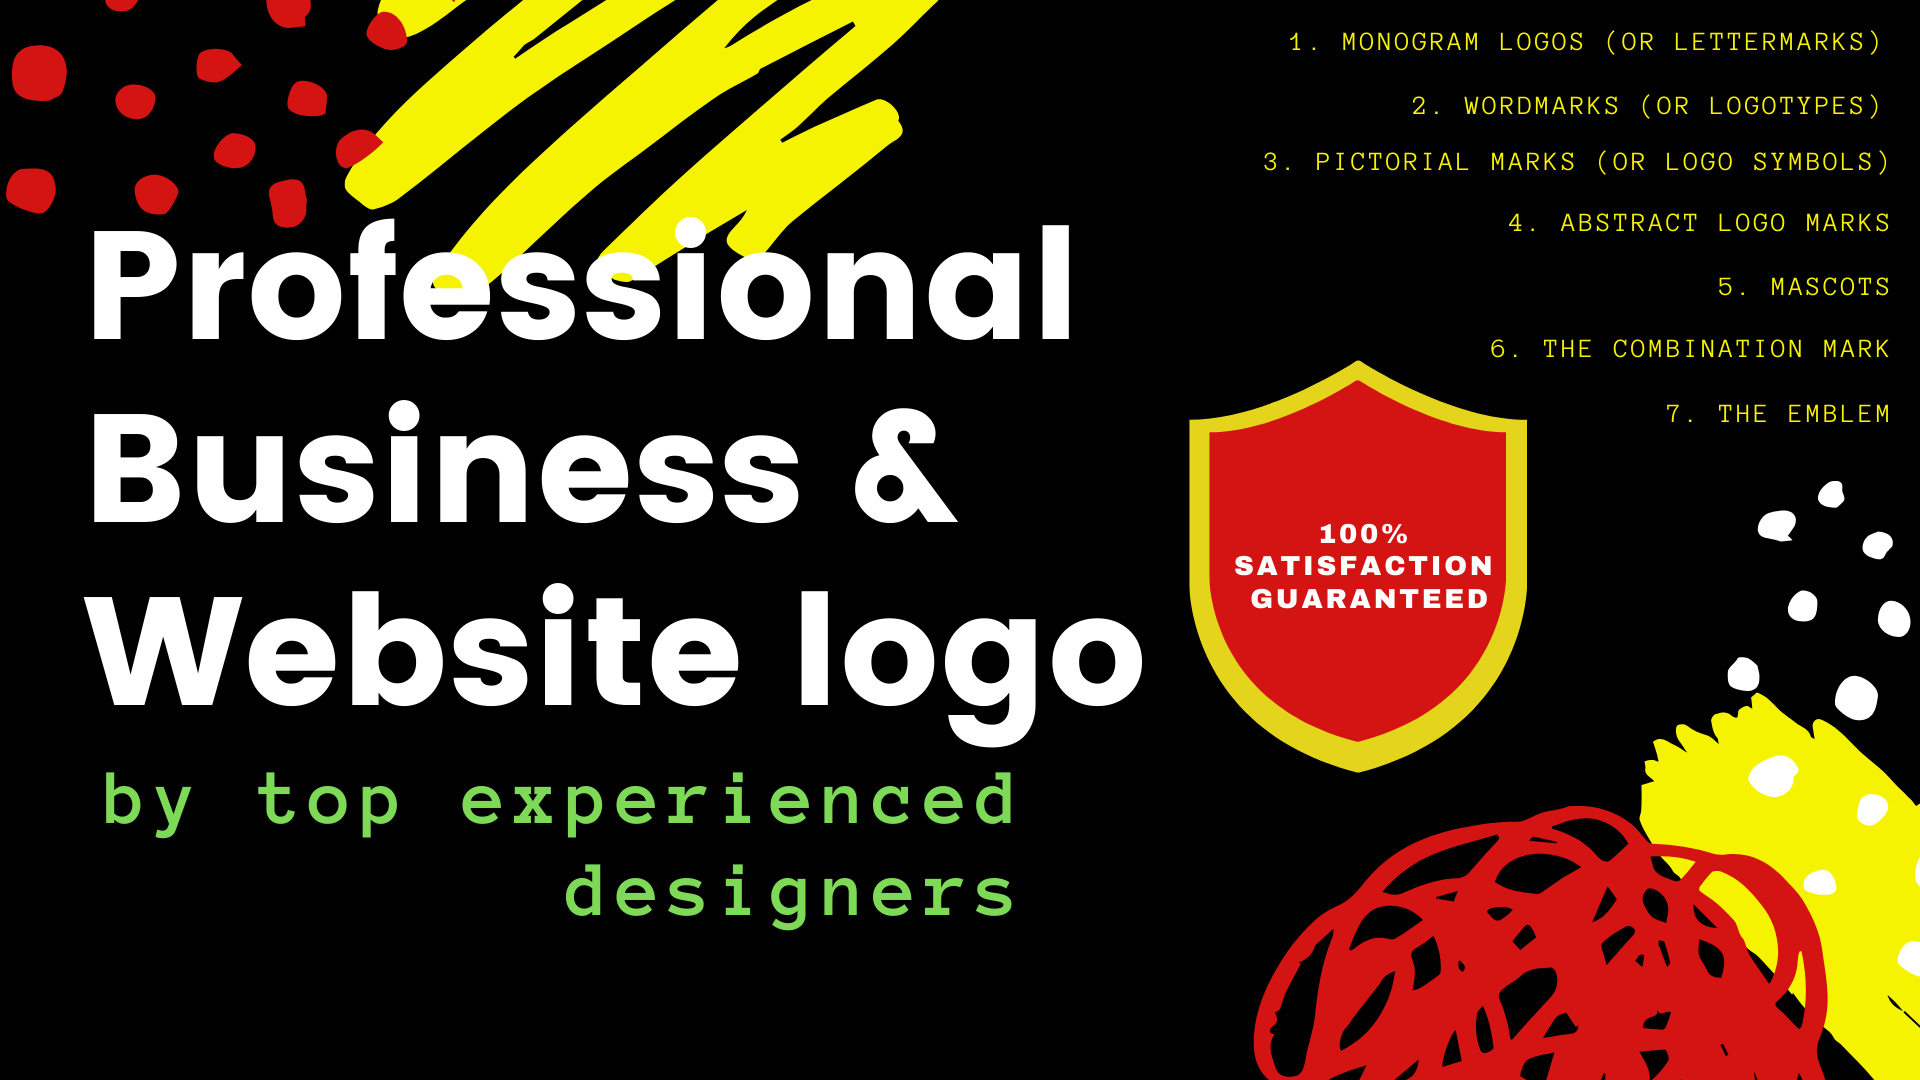 I will design a professional business/Website logo